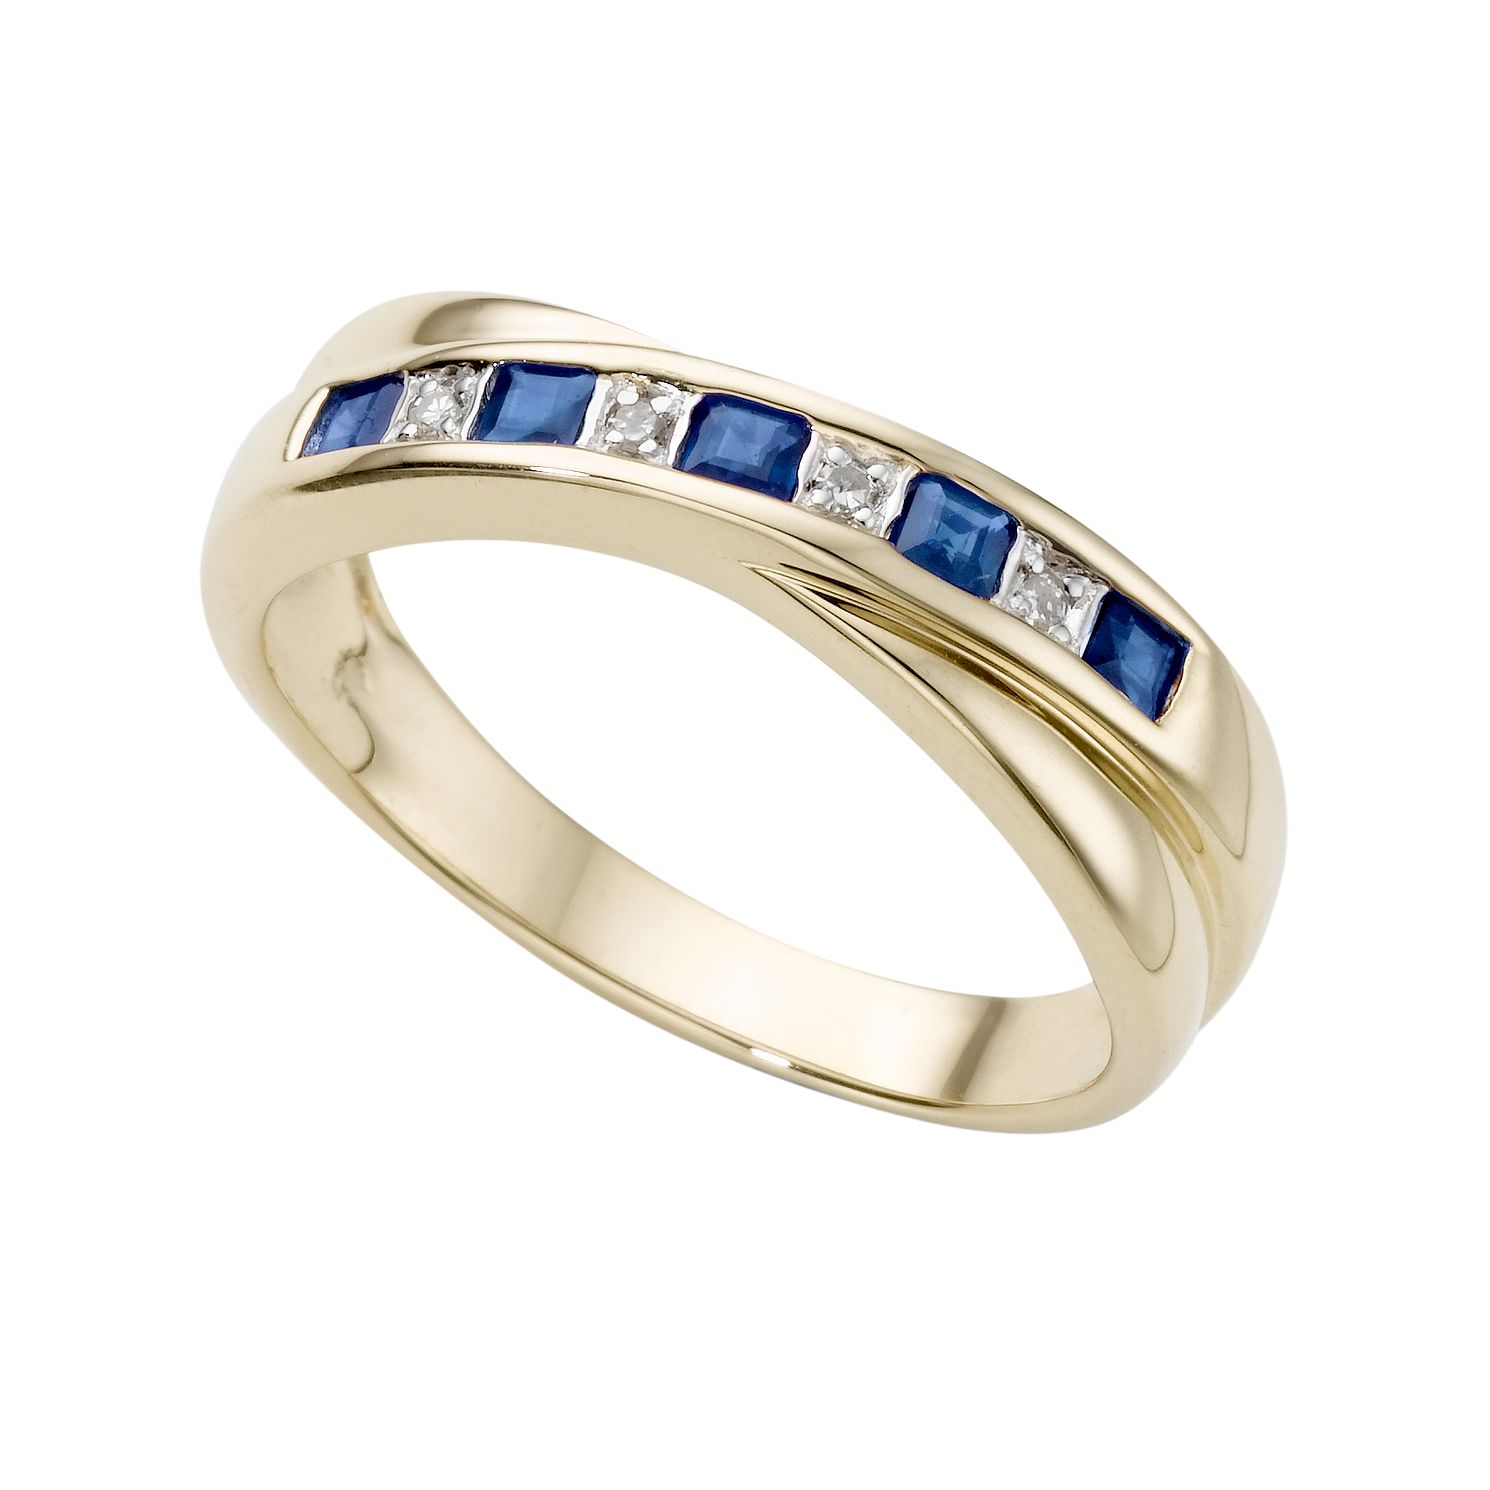 collections diamond gb silver collection amp diamonds sterling ring en treasured jewellery royal of london rings coloured links blue white